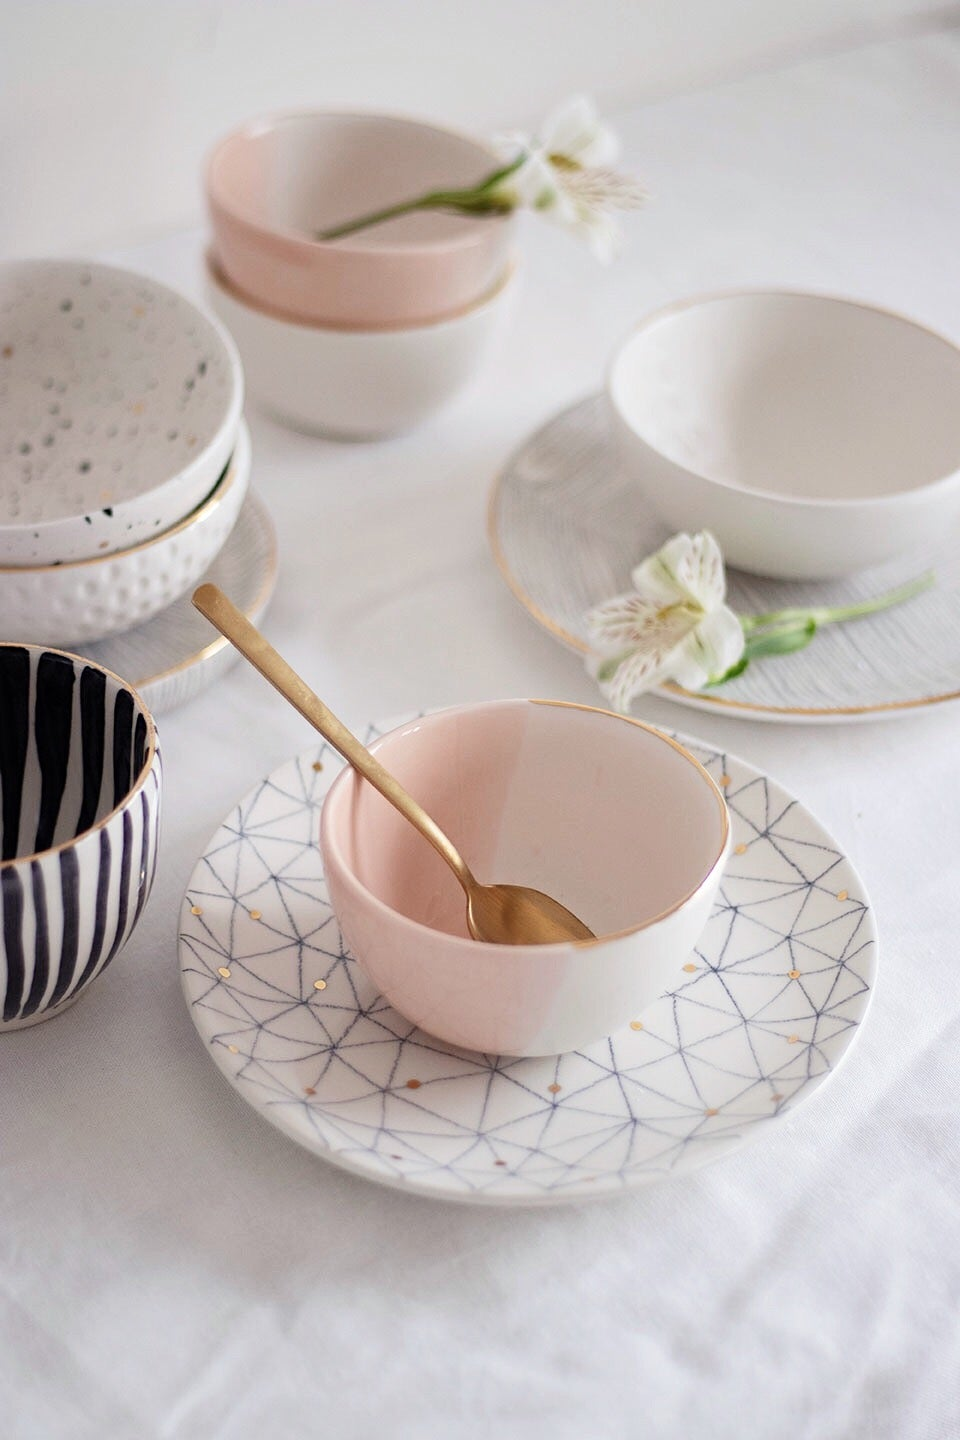 Image of Peach and White Small Bowl